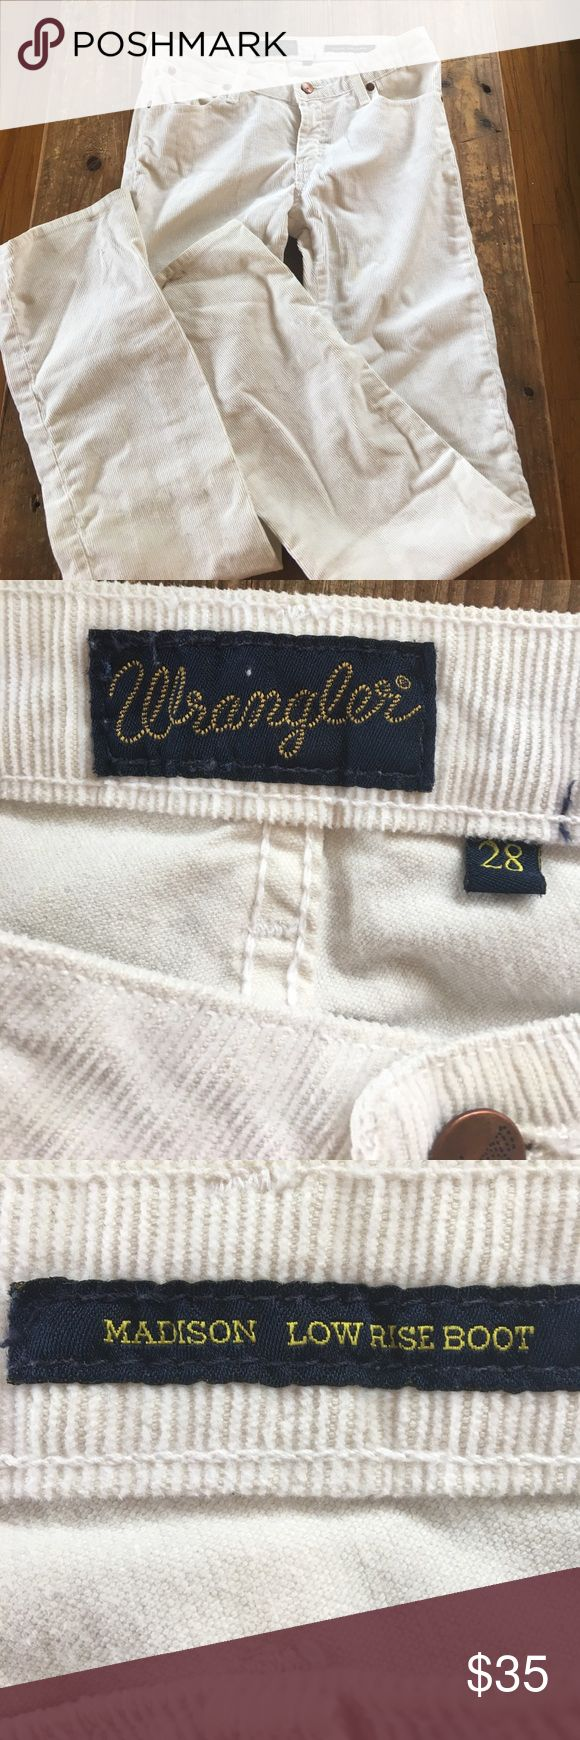 Wrangler low rise boot cut off-white.cordurouy Cute Wrangler in great condition. 3 spots that should come out in wash - as shown. Madison low rise. Wrangler Jeans Boot Cut